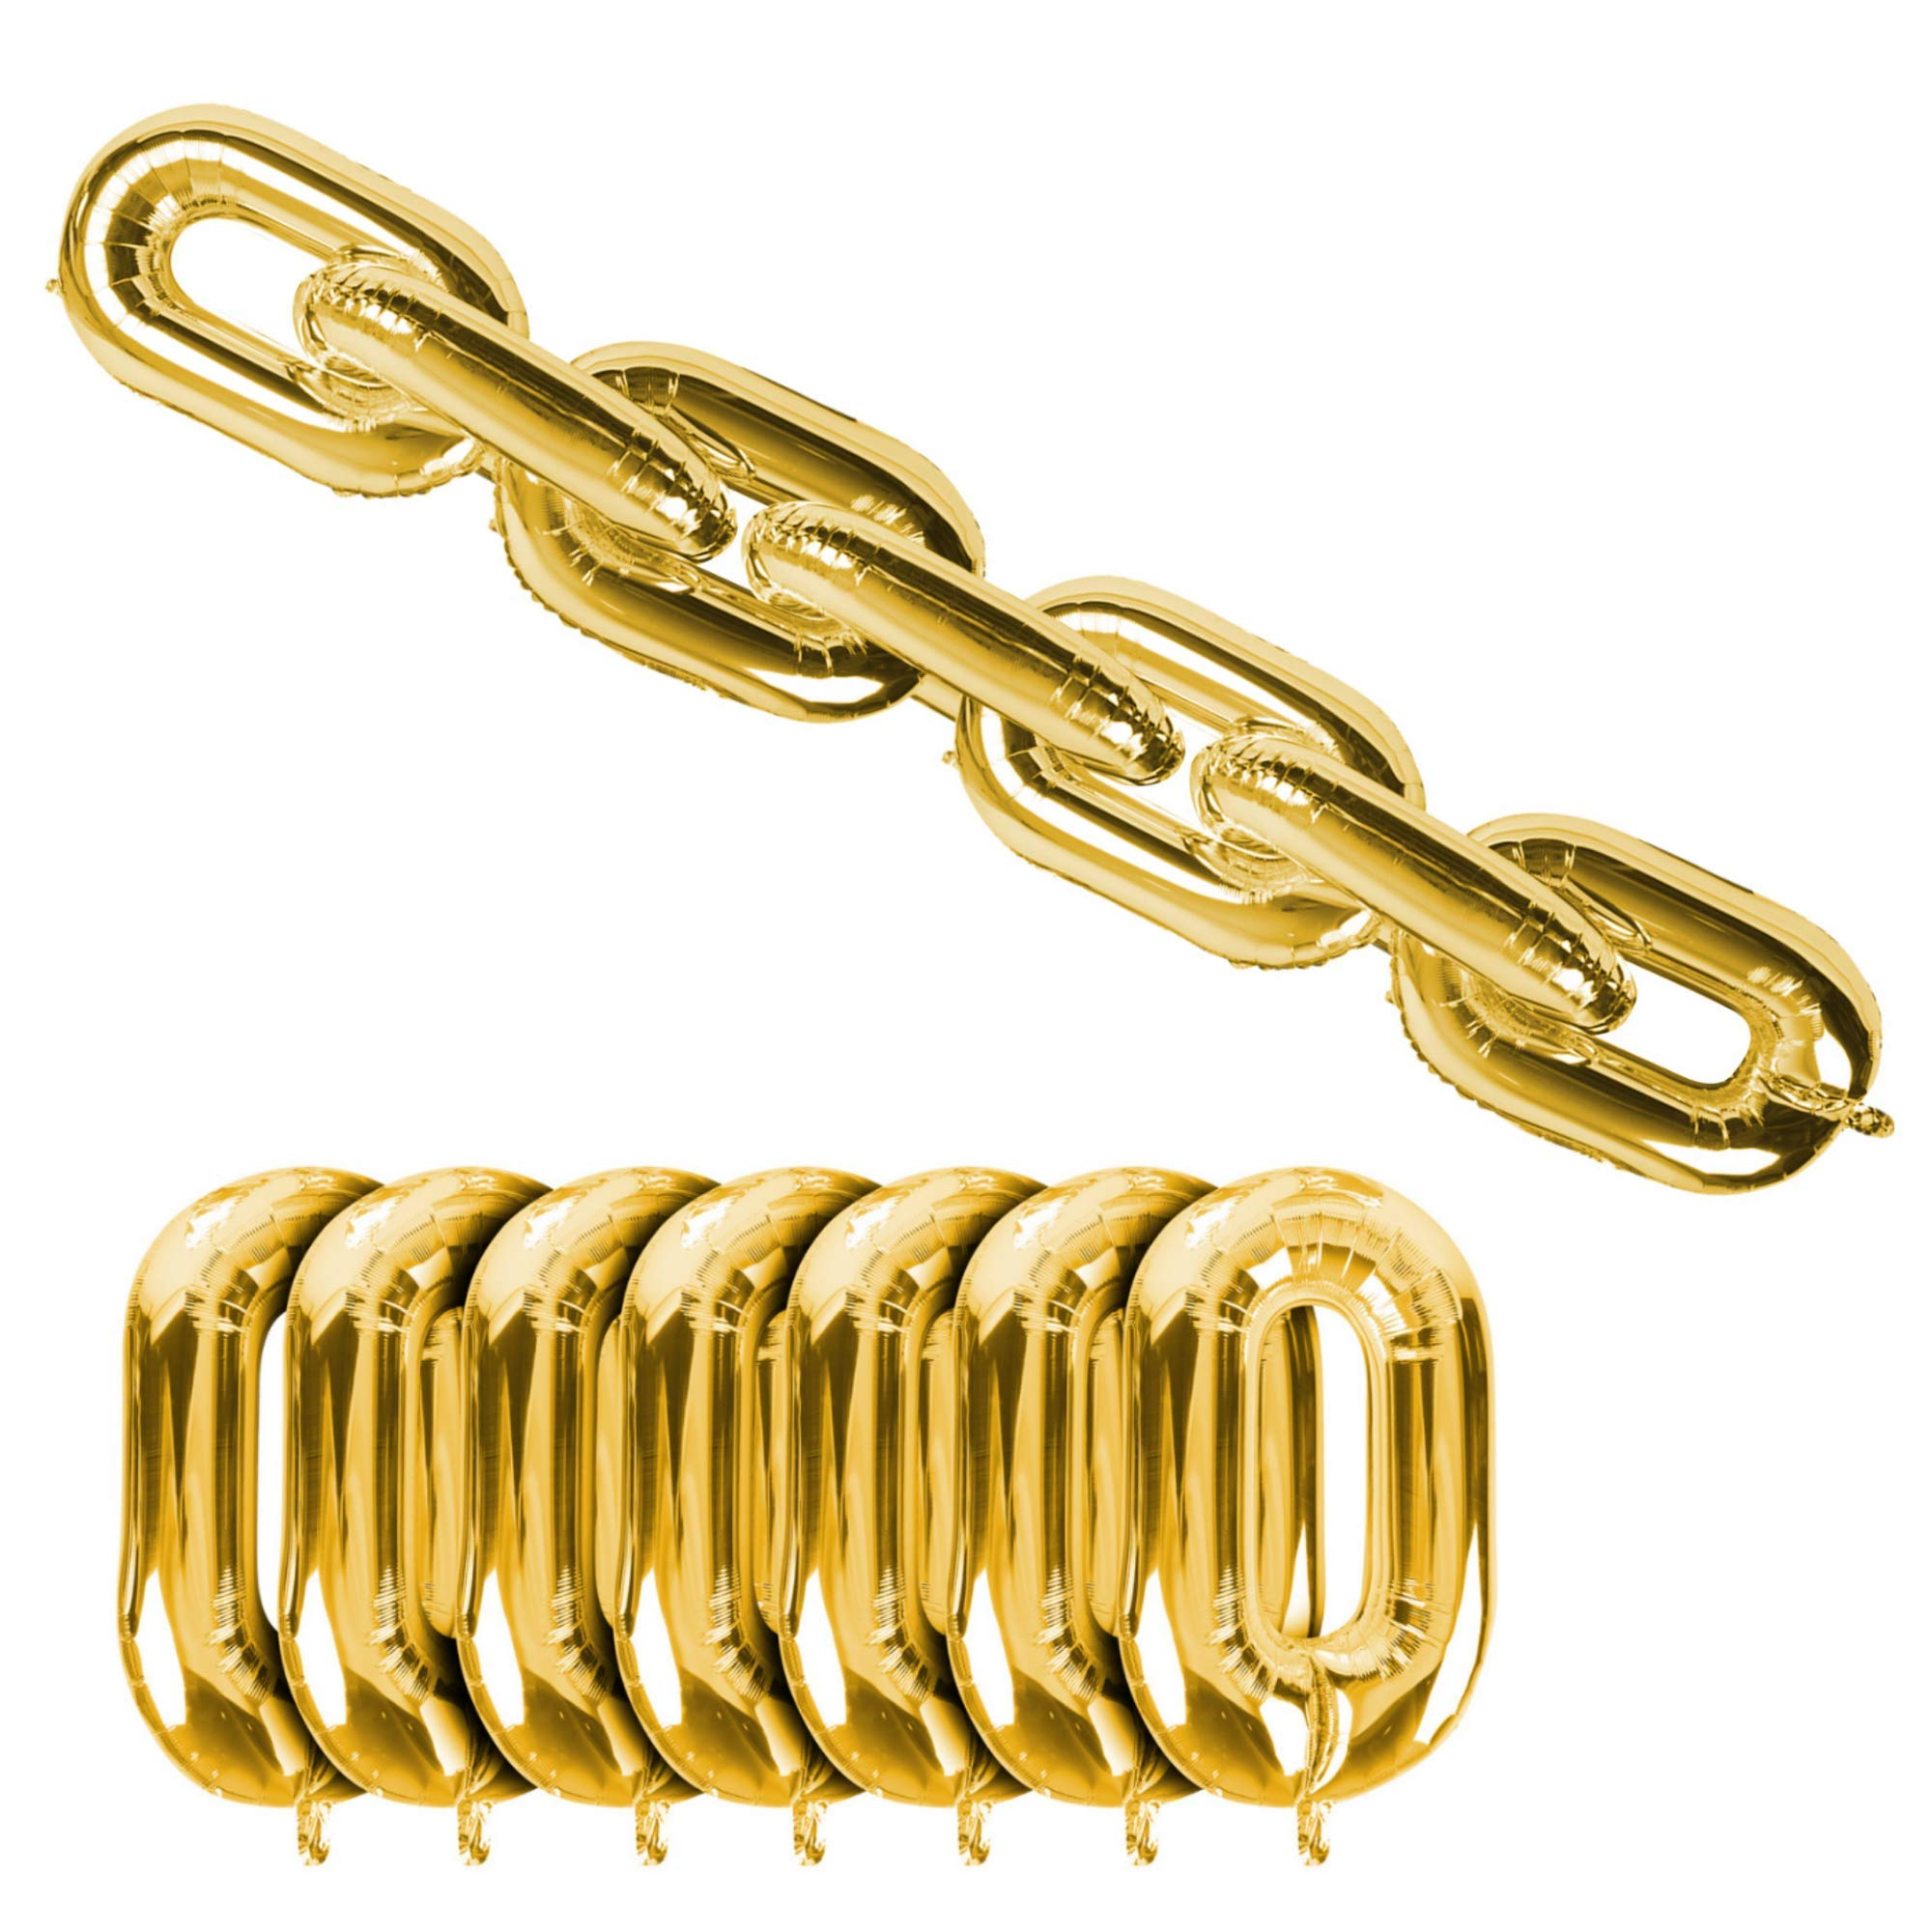 90s Party Theme Balloon Decorating Chain Link Arch for Hip Hop Photo Booth Backdrop | 7 Gold Balloons in Separated Links for Simple 80s 90s Disco Graffiti Photobooth Decorations (40 Inch)